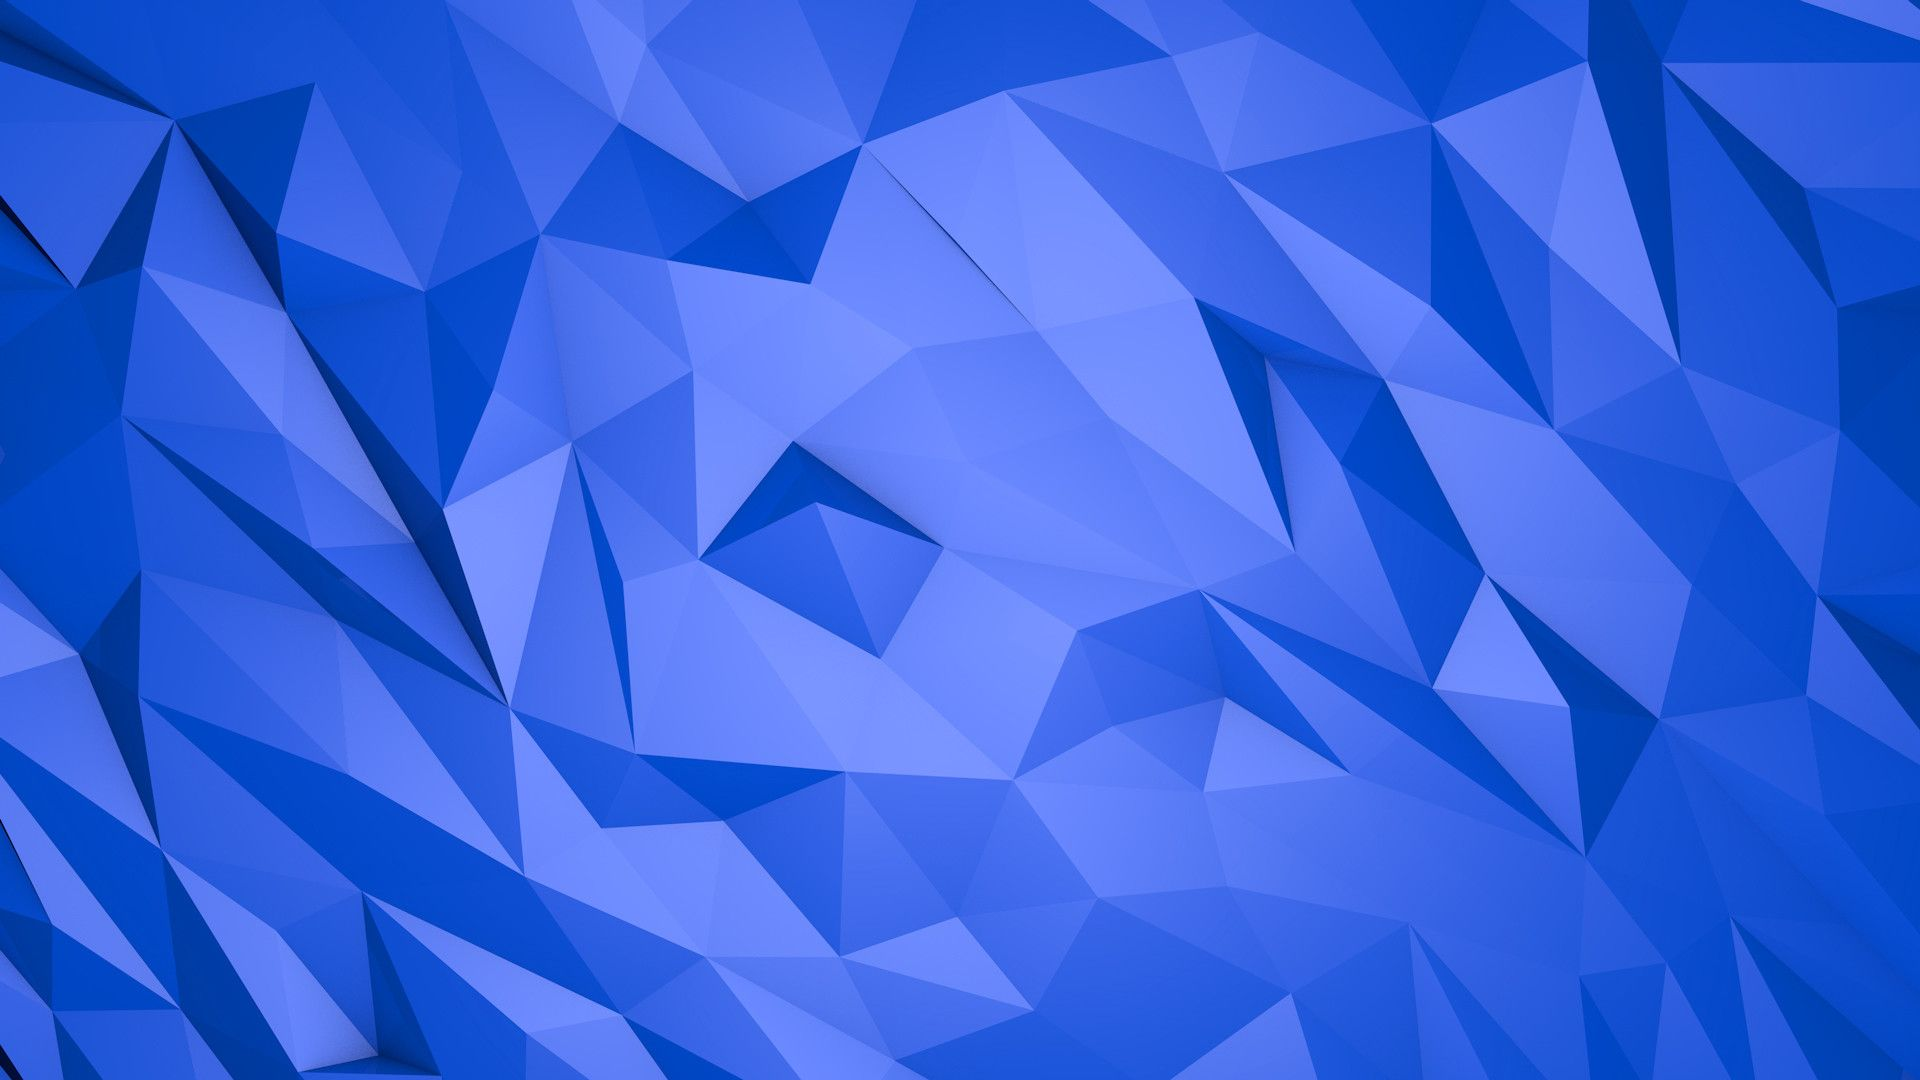 Abstract blue triangles 3D wallpaper. Awesome 3D and HD